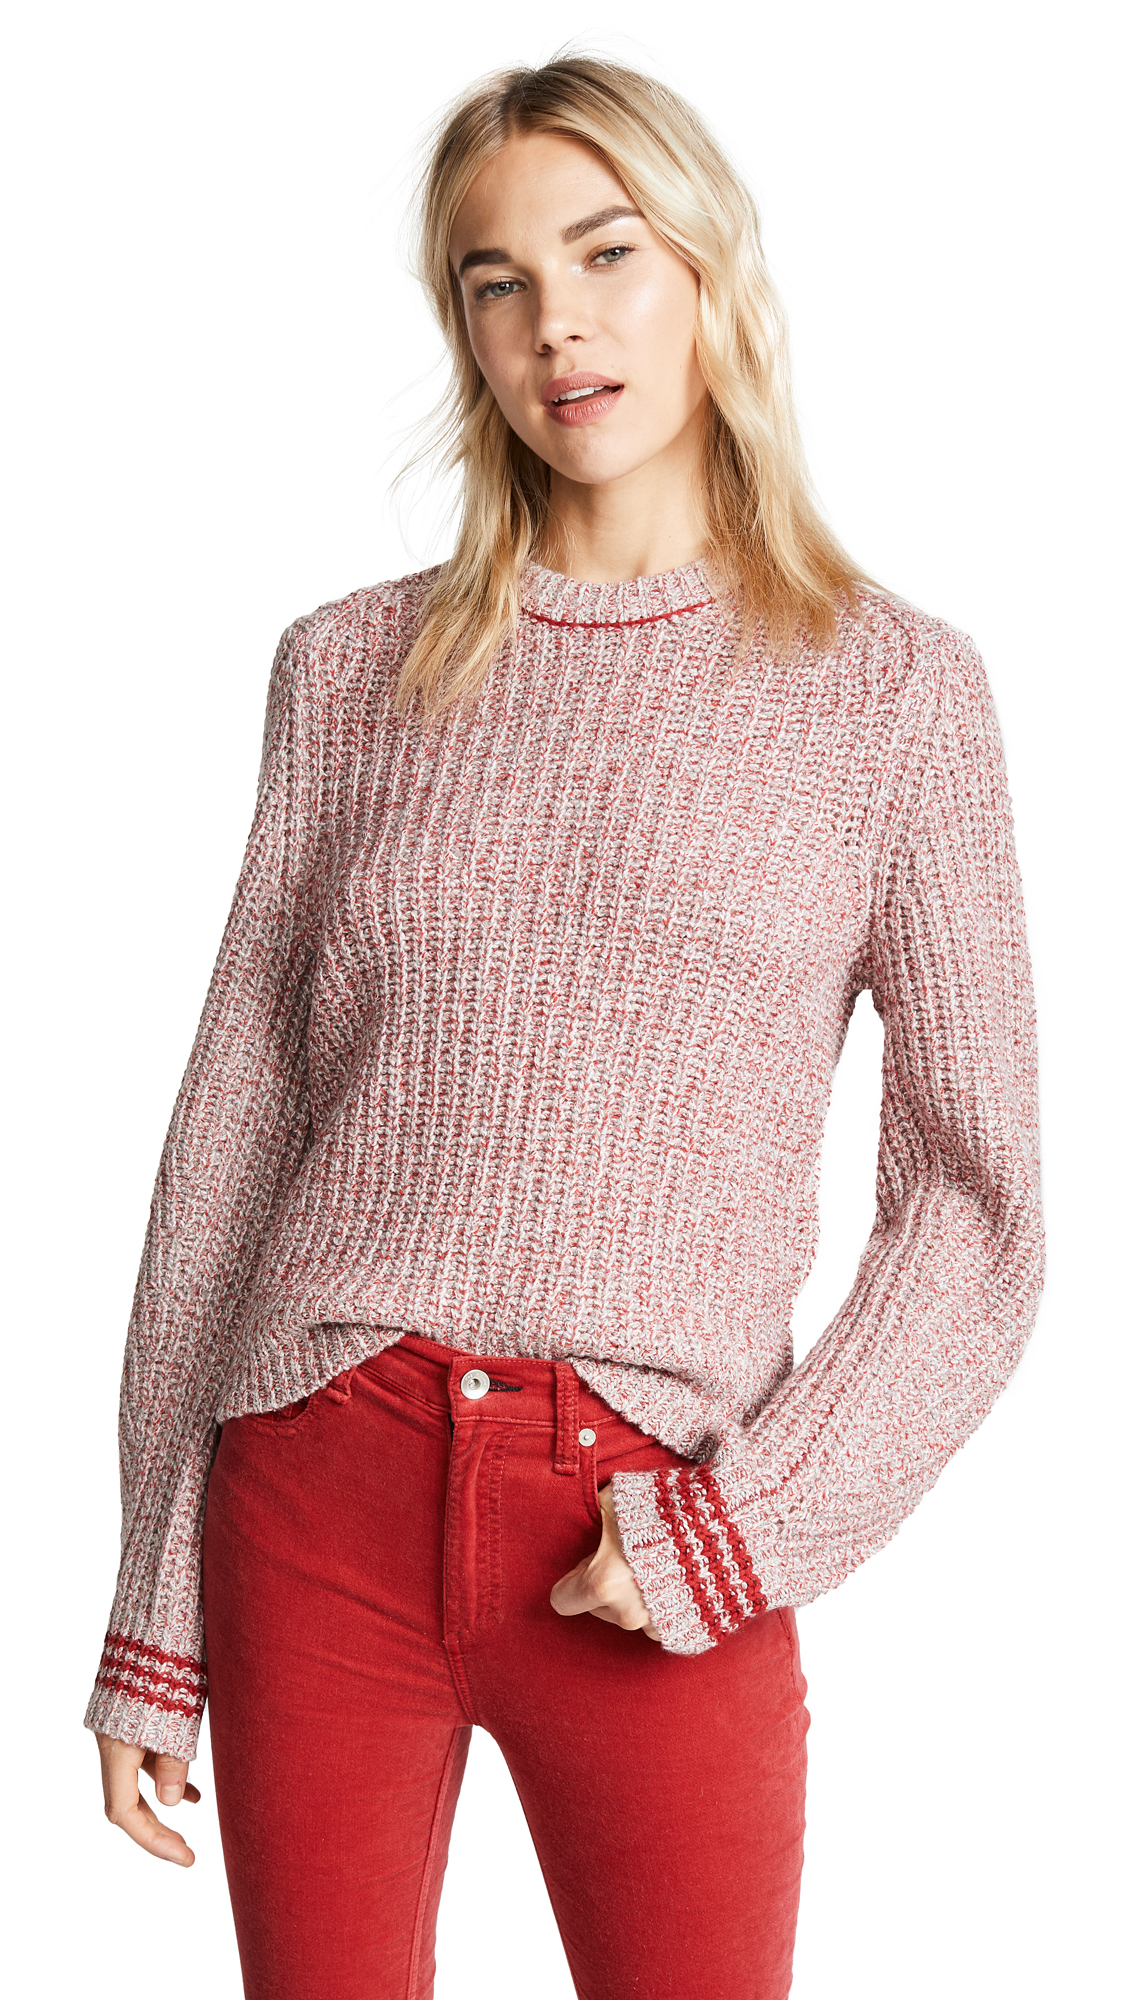 Rag & Bone Cheryl Sweater In Grey/Red